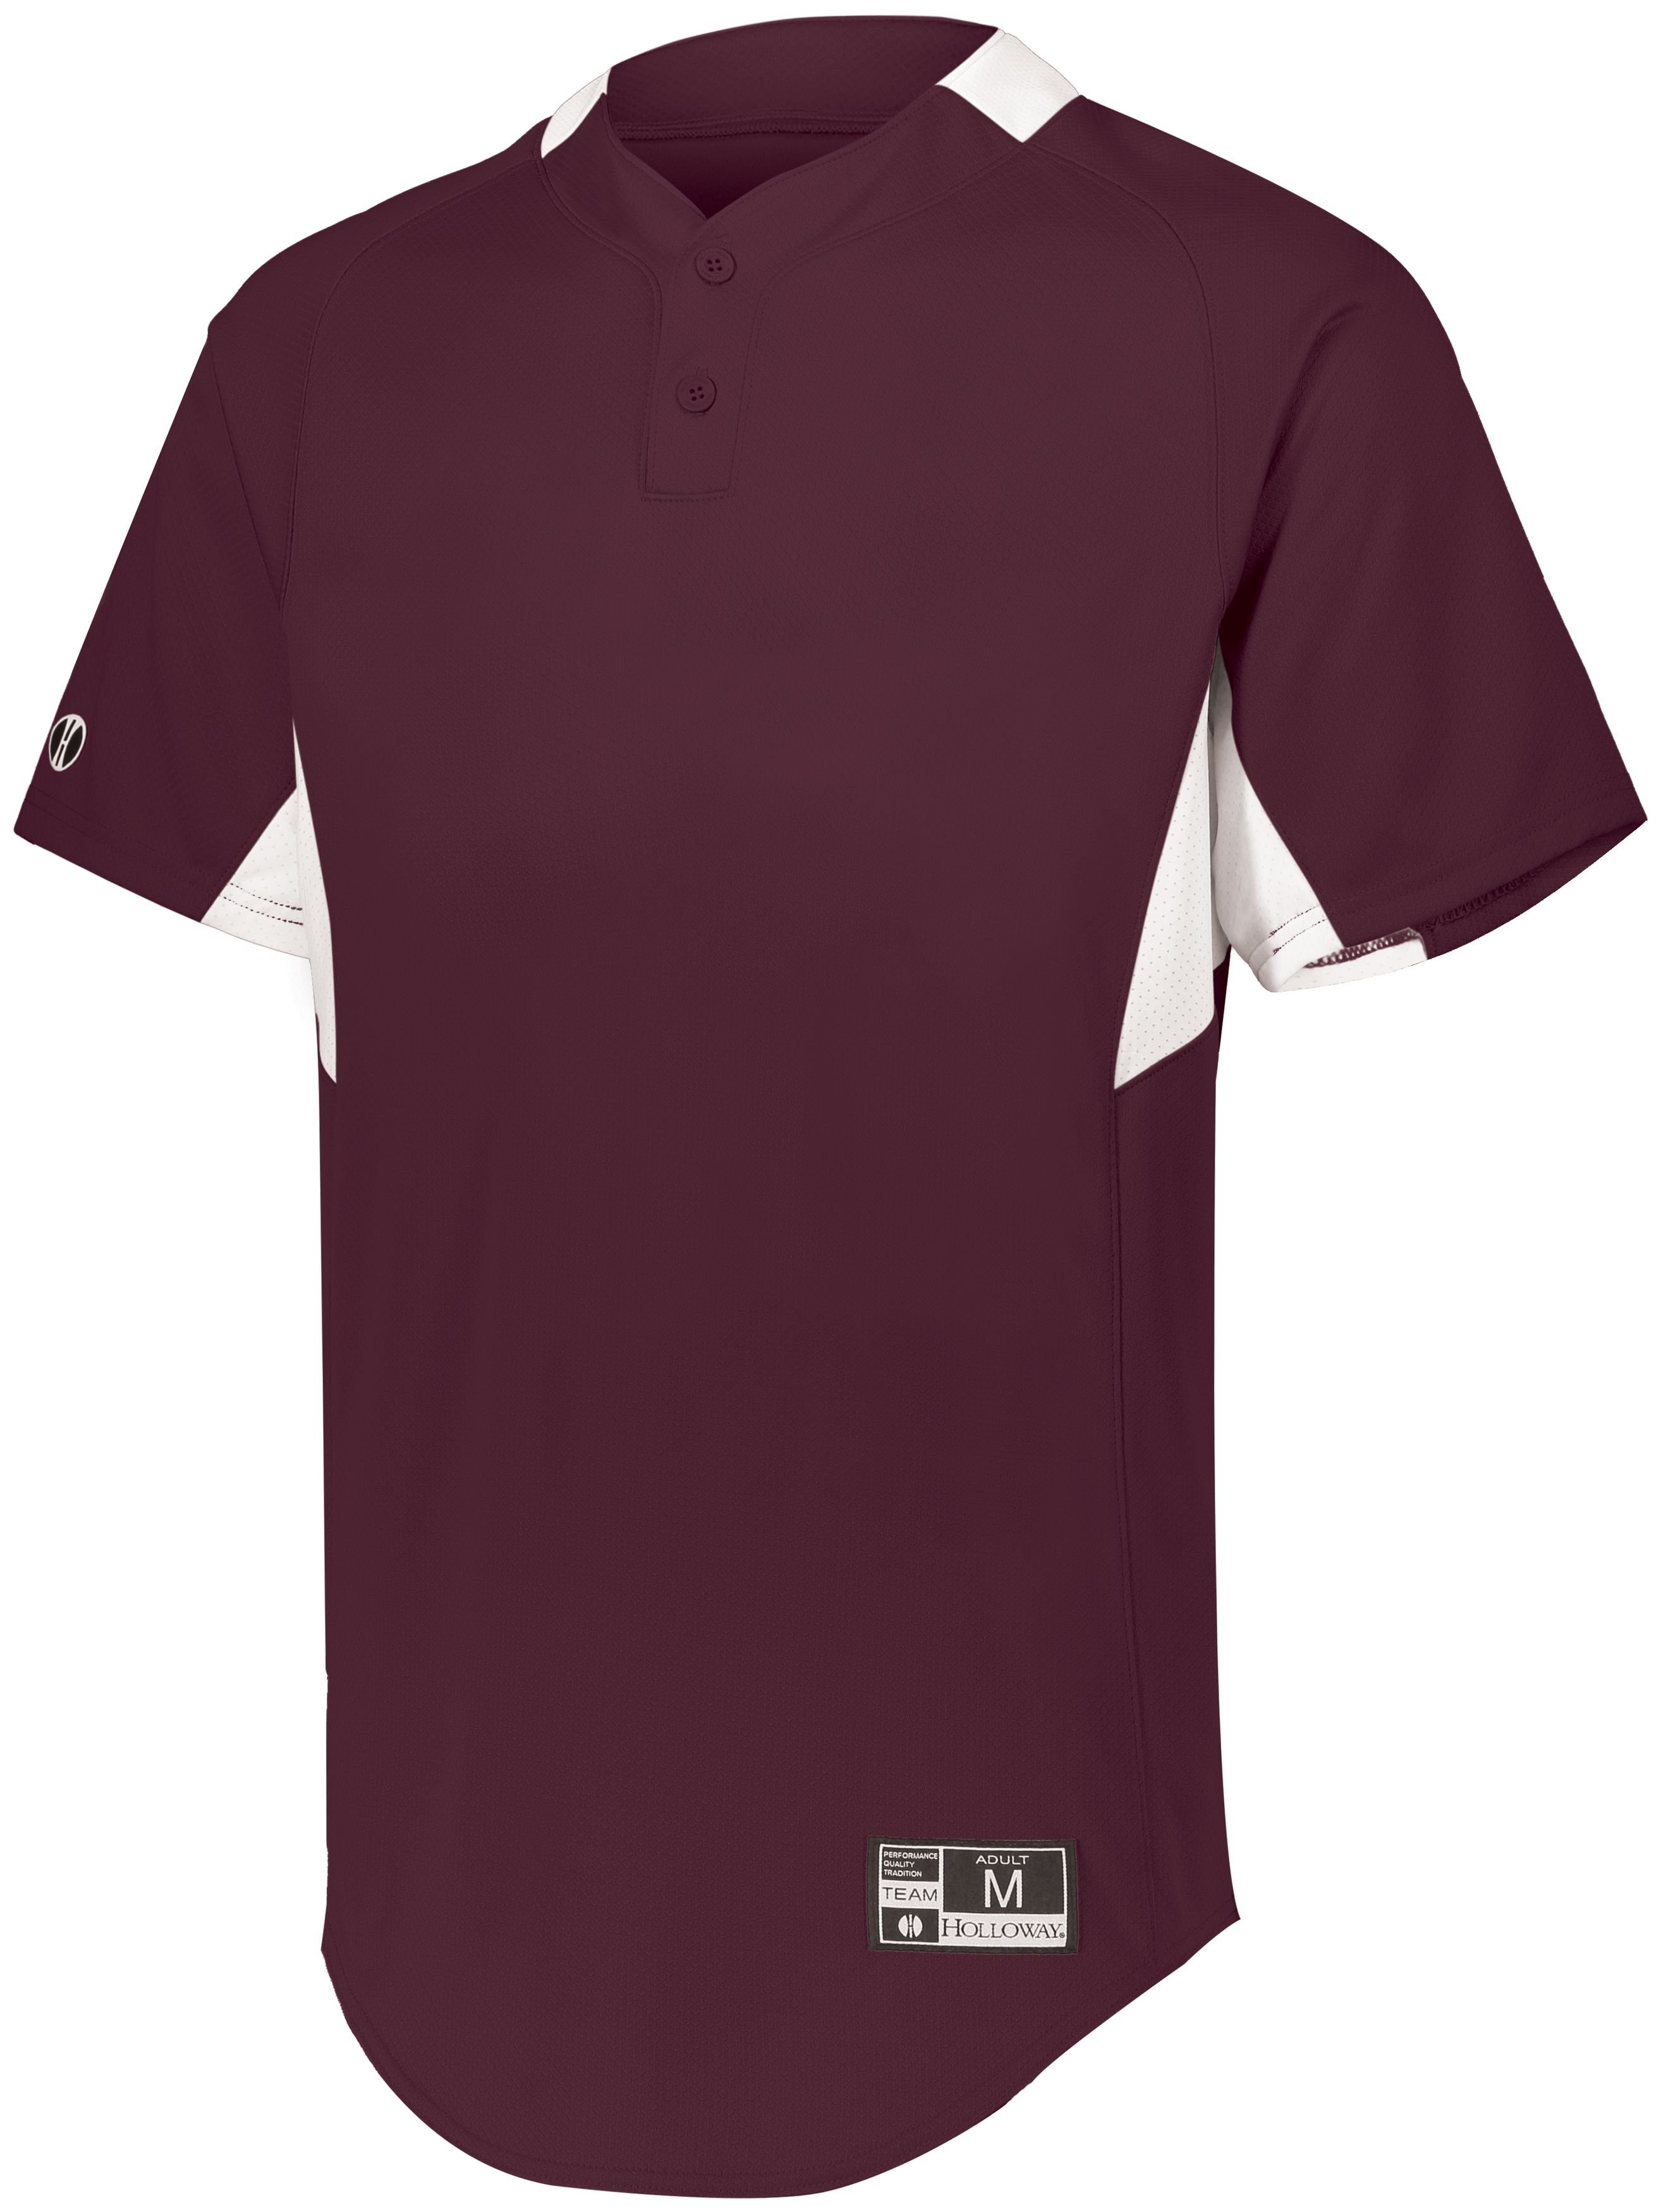 Game7 Two-Button Baseball Jersey - MAROON/WHITE